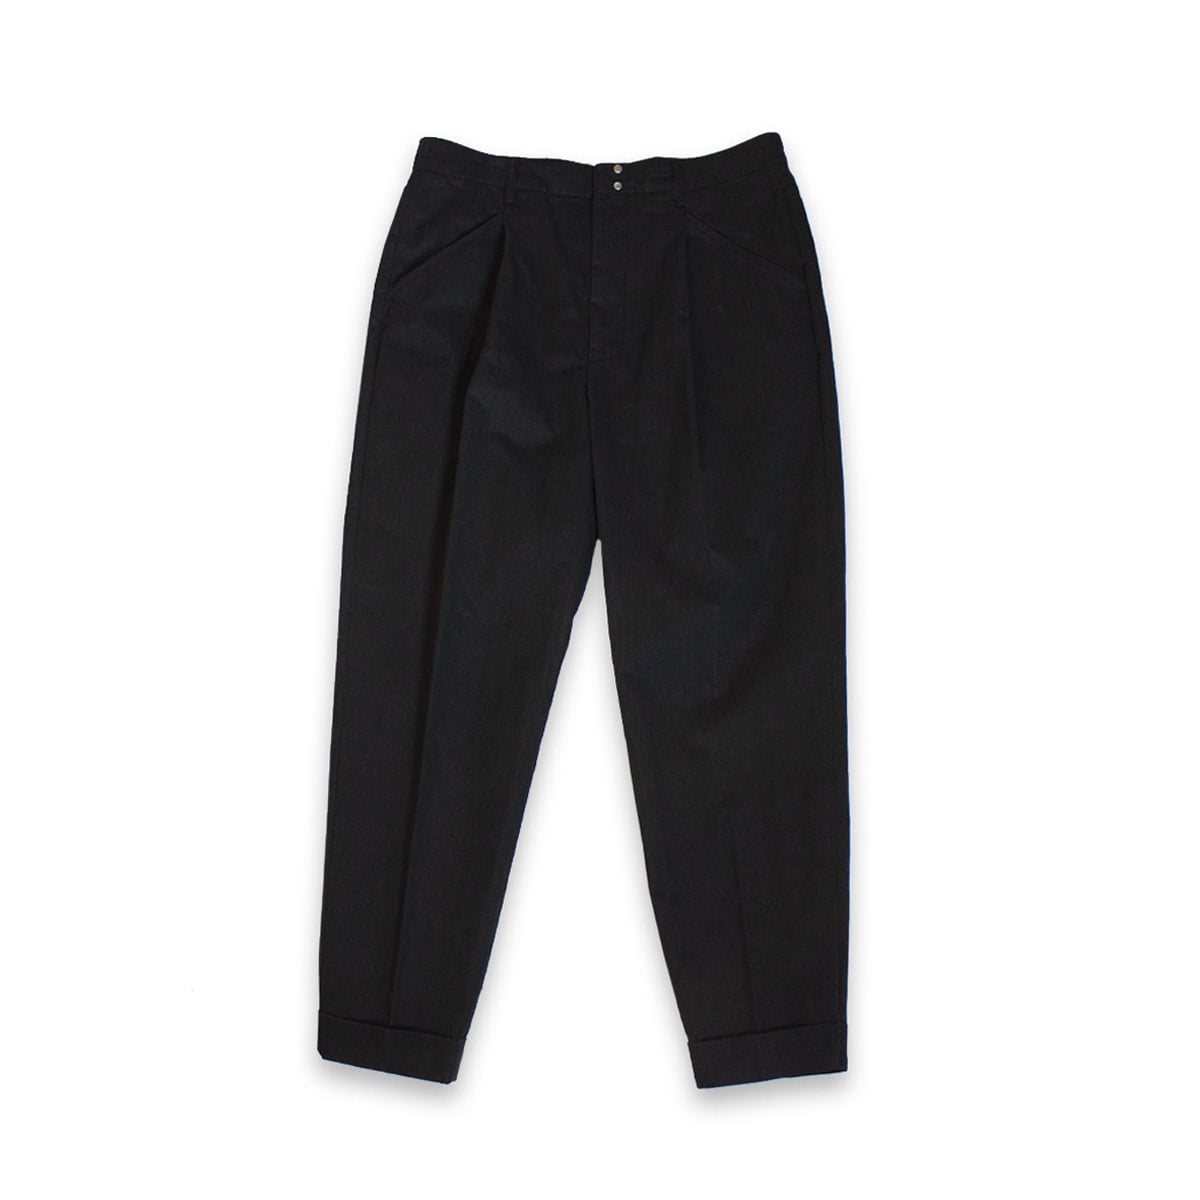 [BEHEAVYER] TUCK PANTS 'BLACK'